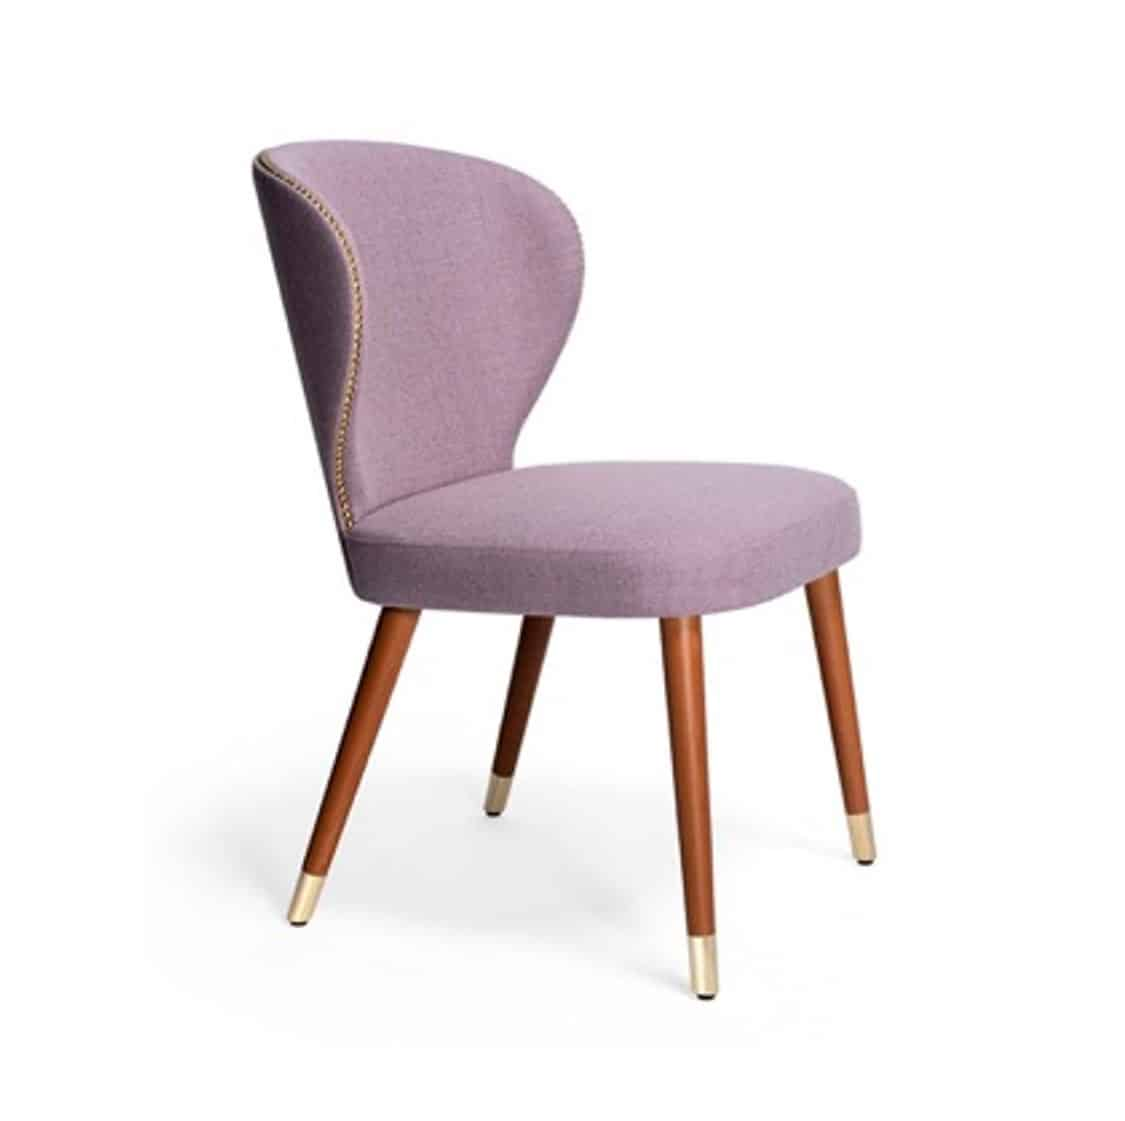 Abbraccio Deluxe side chair Accento at DeFrae Contract Furniture